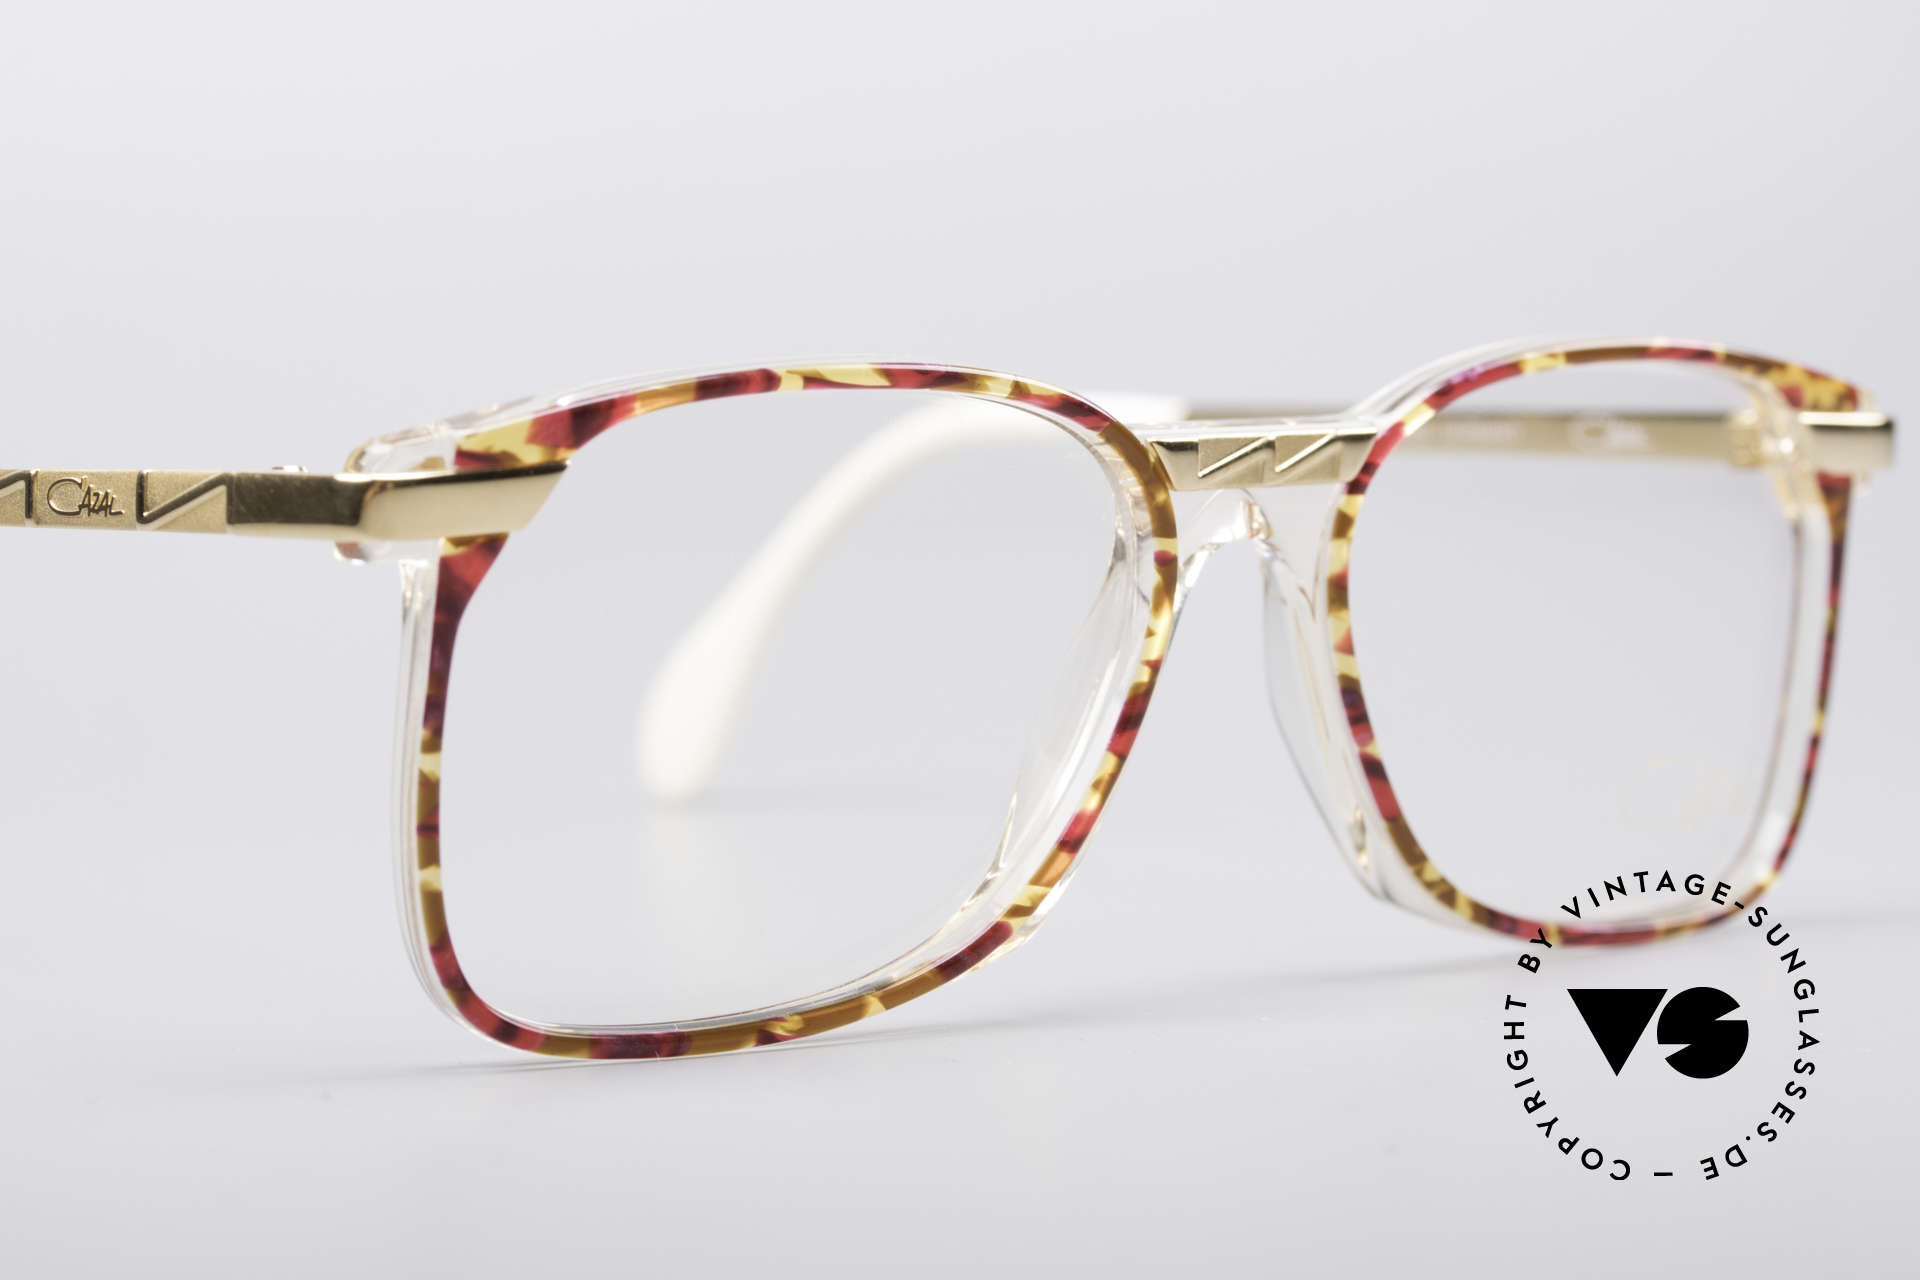 Cazal 341 Vintage No Retro Glasses 90s, the original DEMO lenses can be replaced optionally, Made for Women